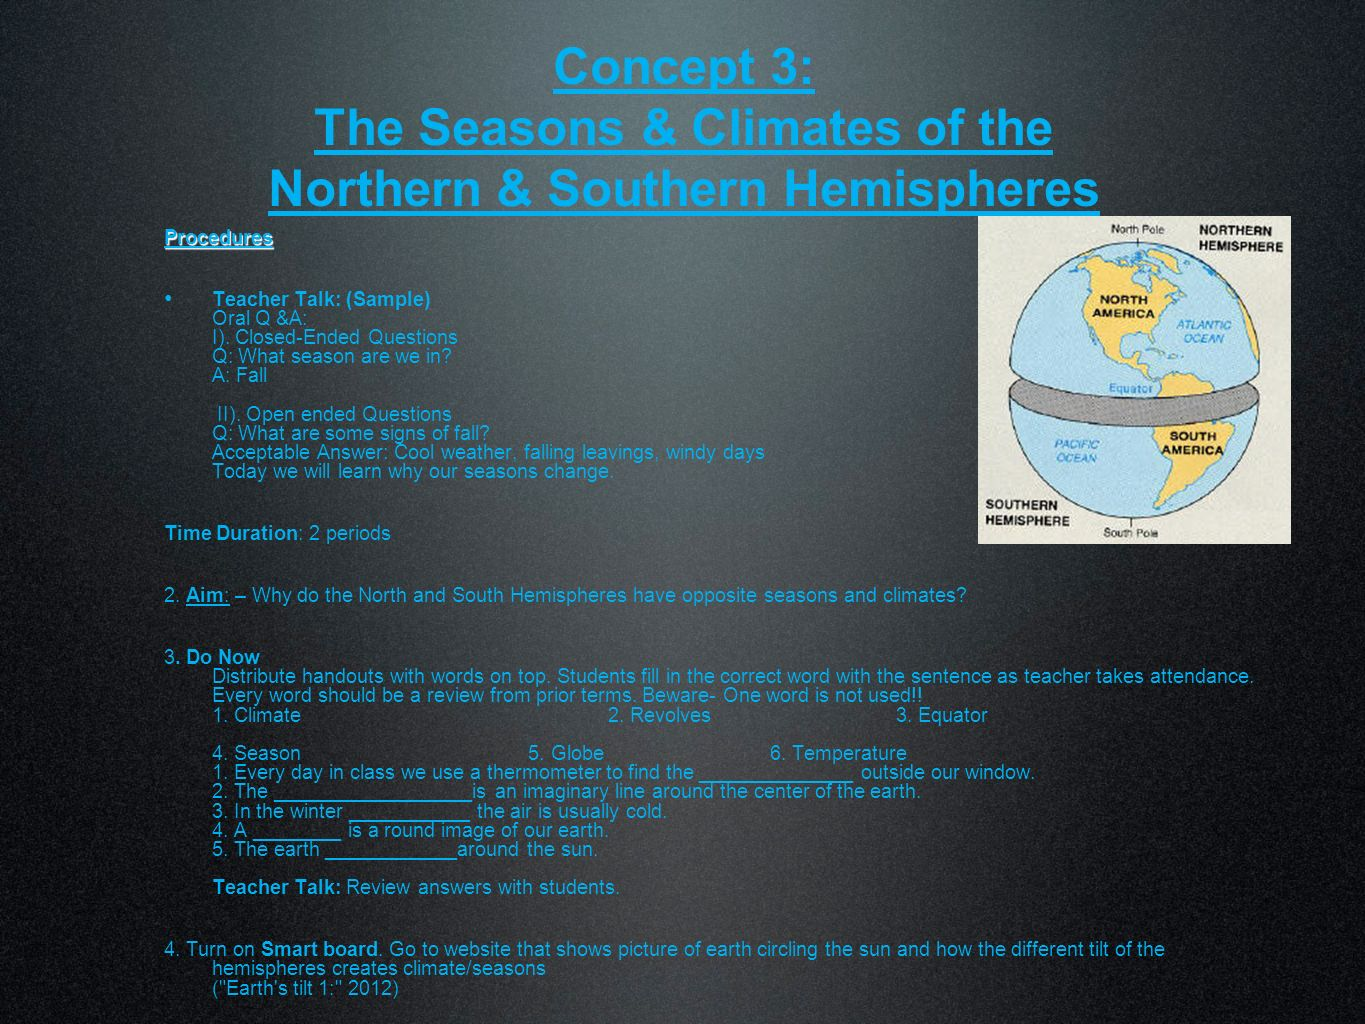 Concept 3: The Seasons & Climates of the Northern & Southern Hemispheres